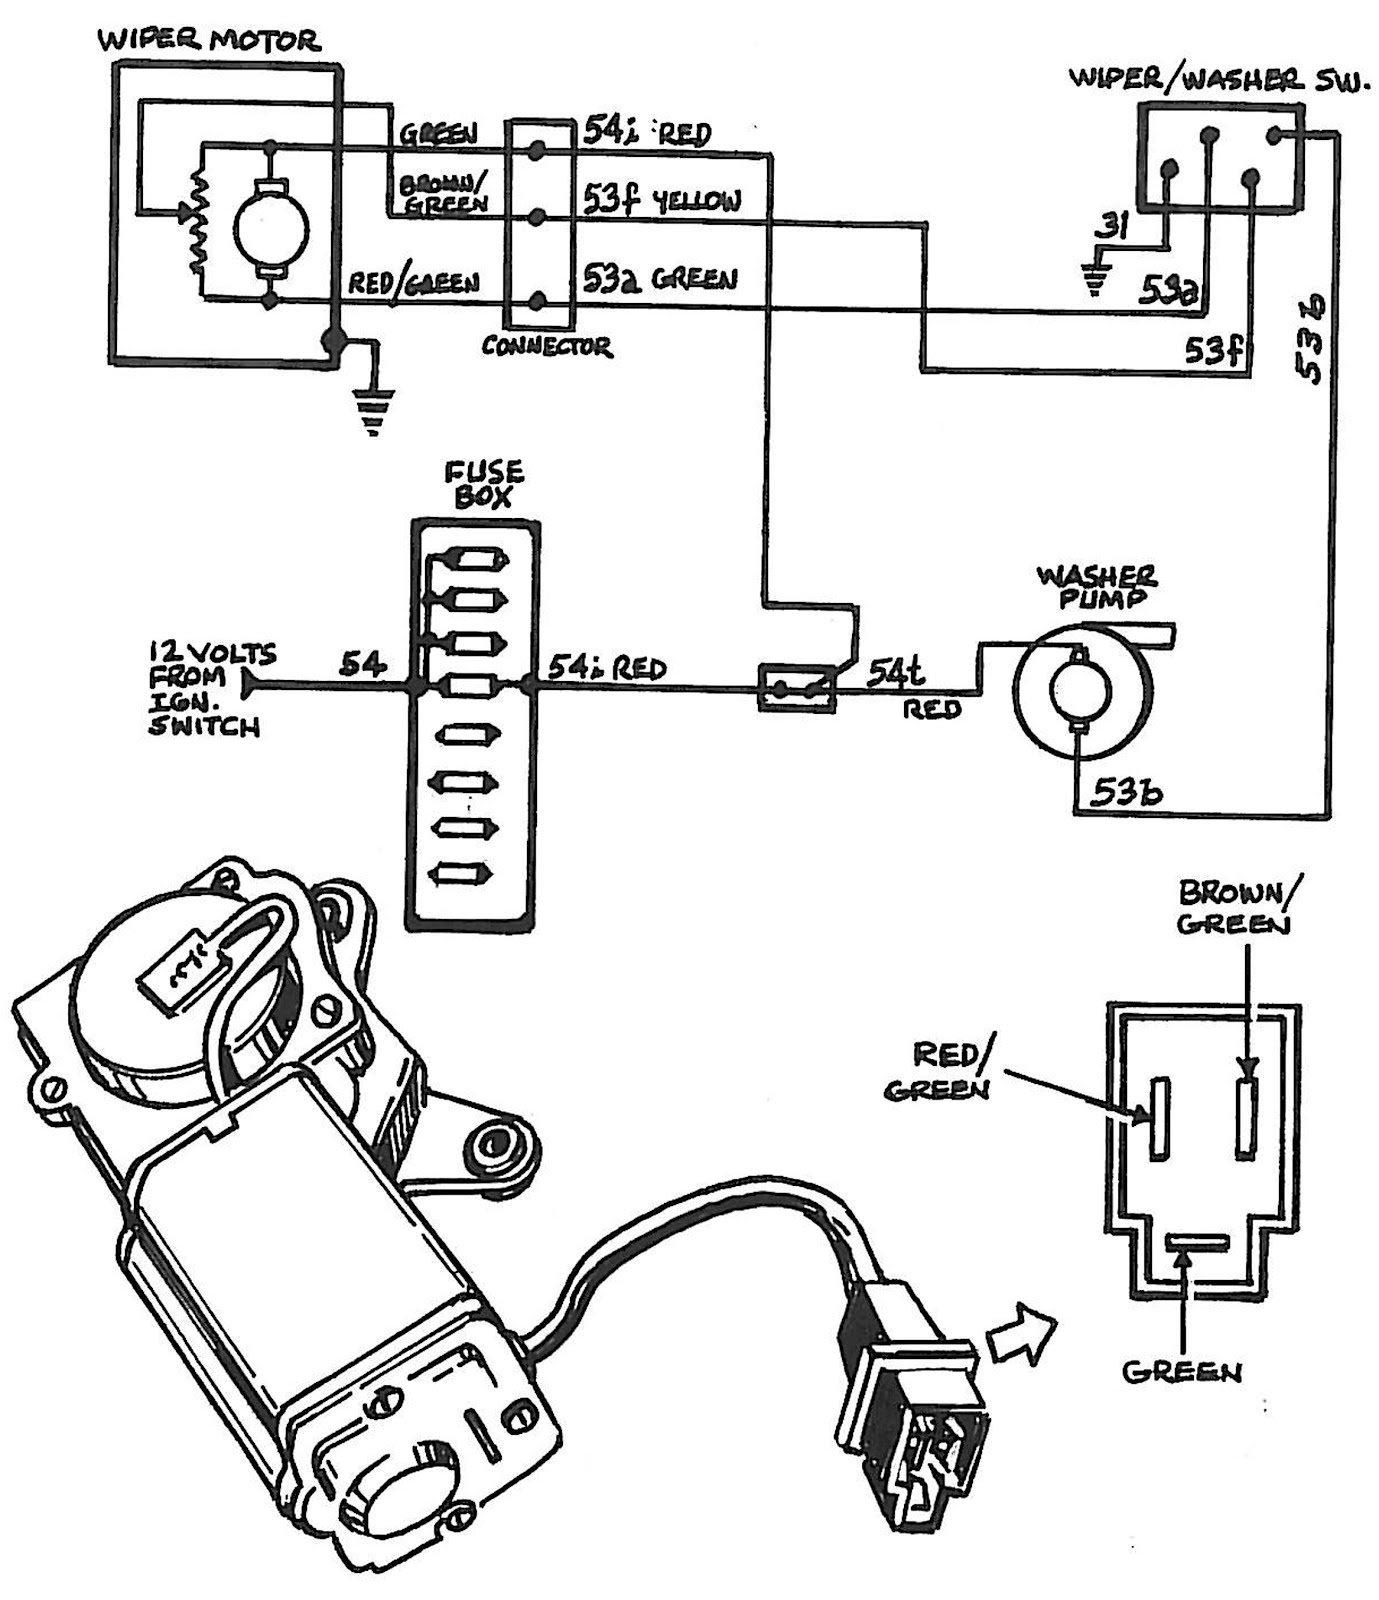 ford f 350 windshield wiper motor wiring diagram saab journal: early windshield wiper motor rebuild ford windshield wiper motor wiring diagram 66 77 early